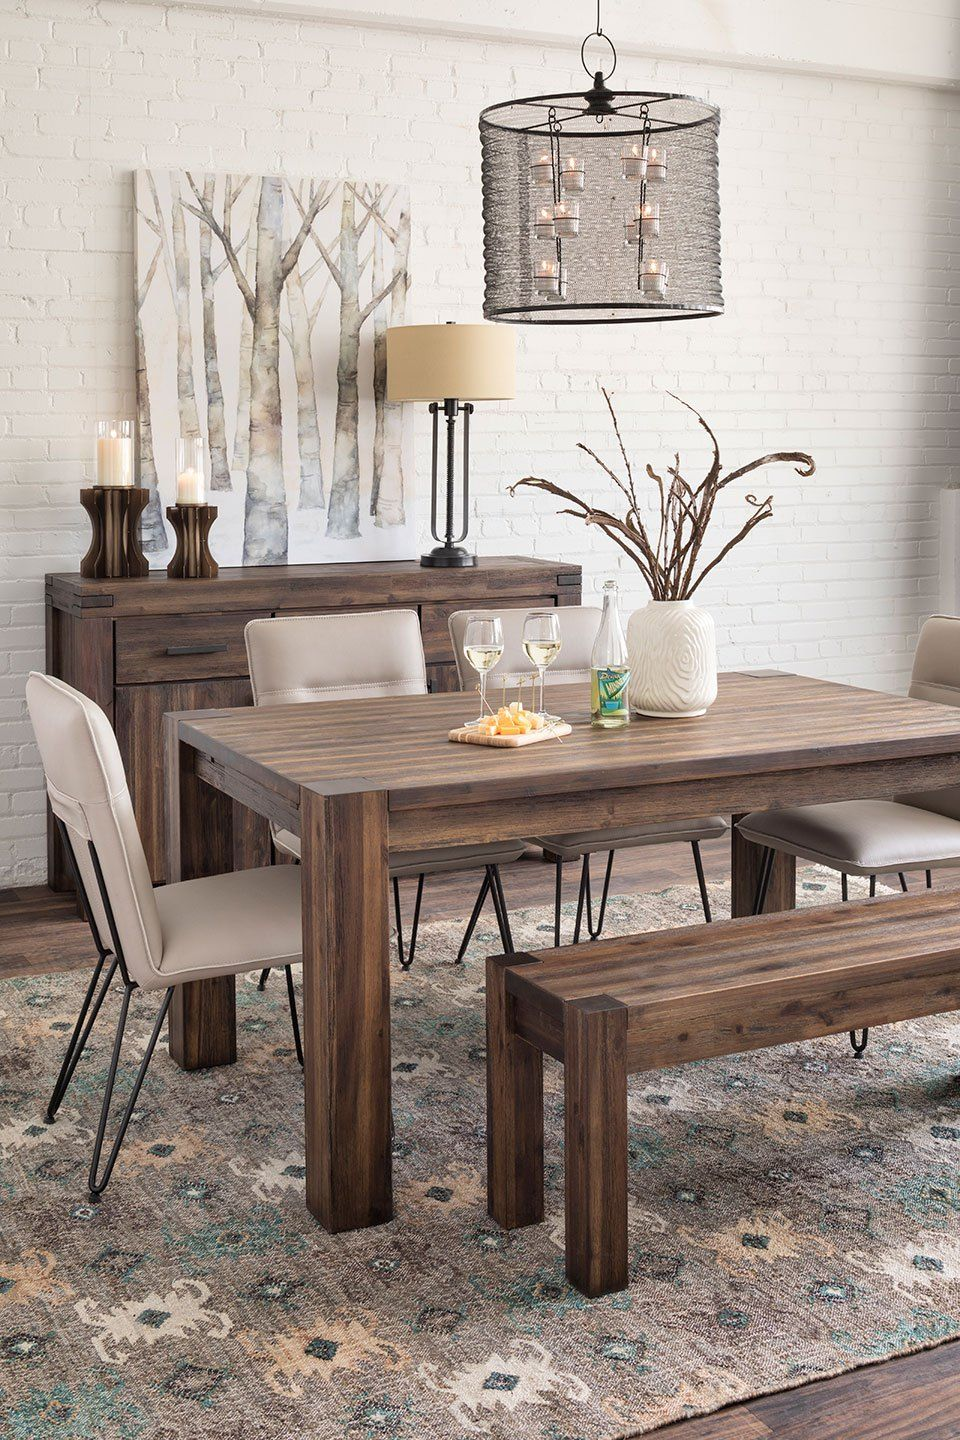 7 Reasons To Embrace The Rustic Trend  Rustic Table Bench And Room Impressive White Dining Room Bench Design Inspiration